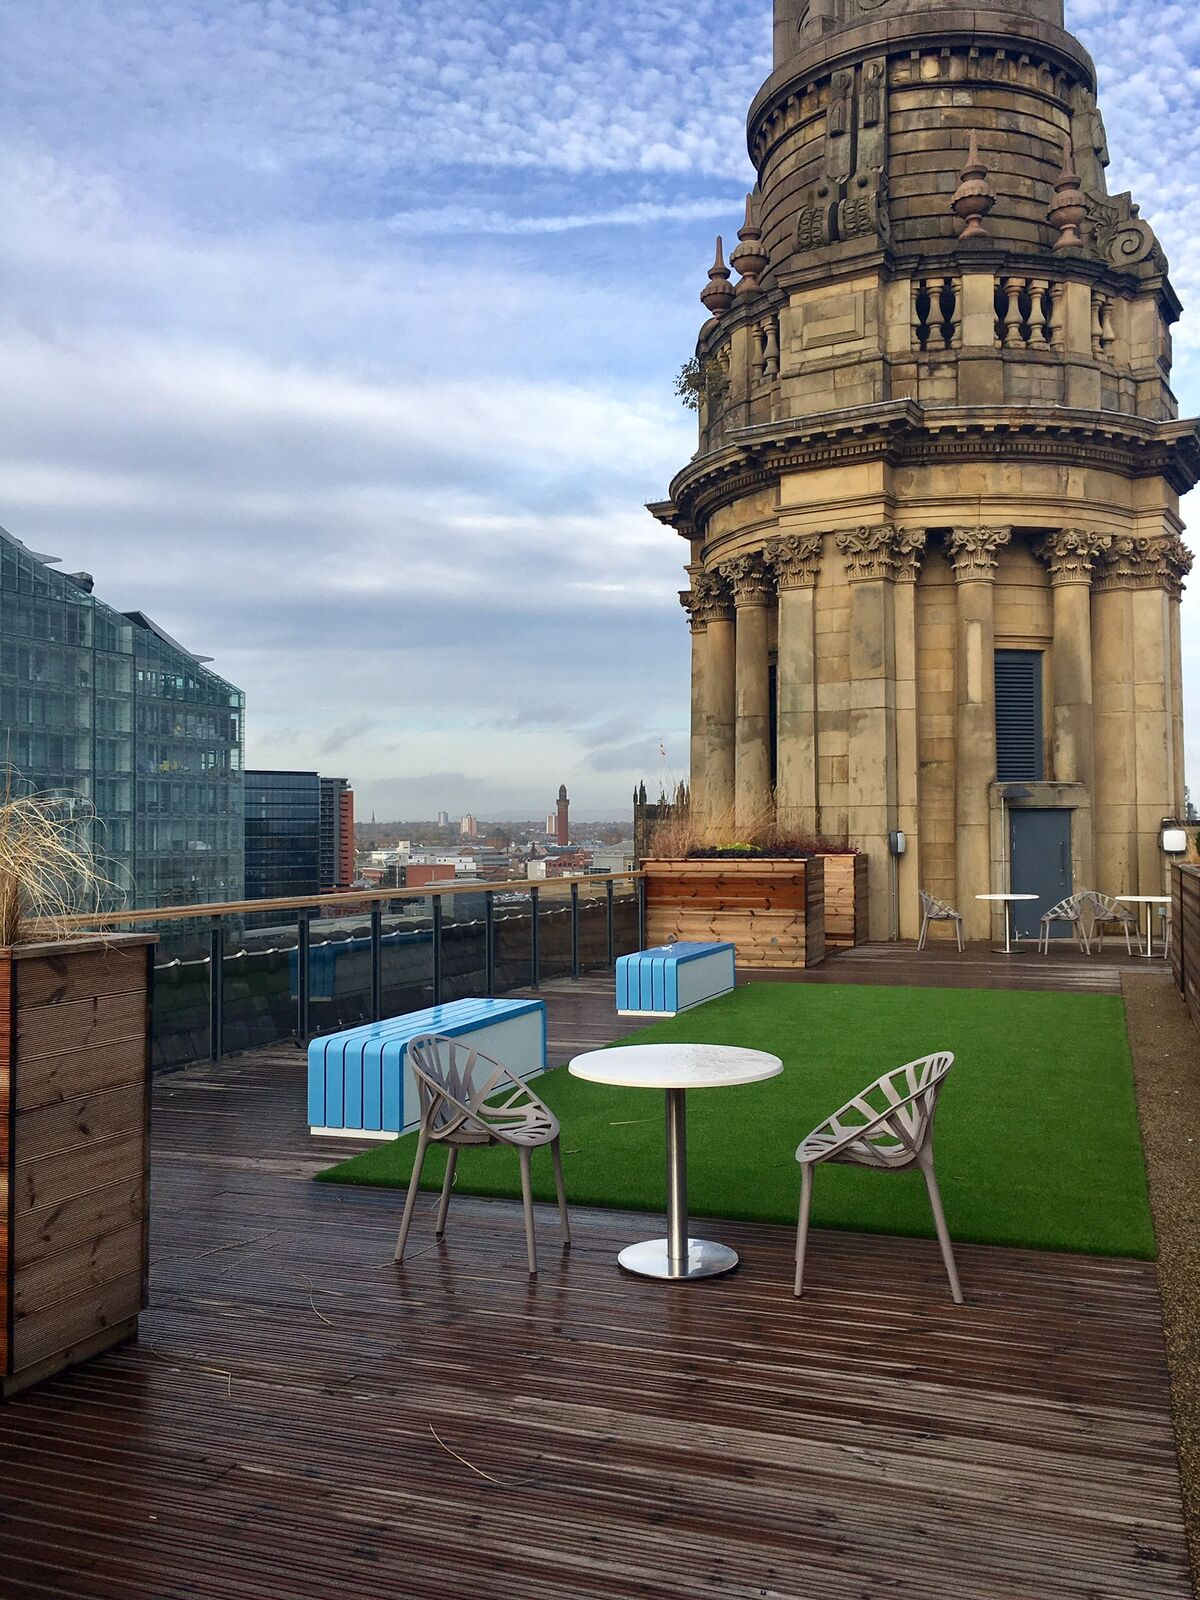 Total Restore - physiotherapist in Manchester - rooftop image of studio